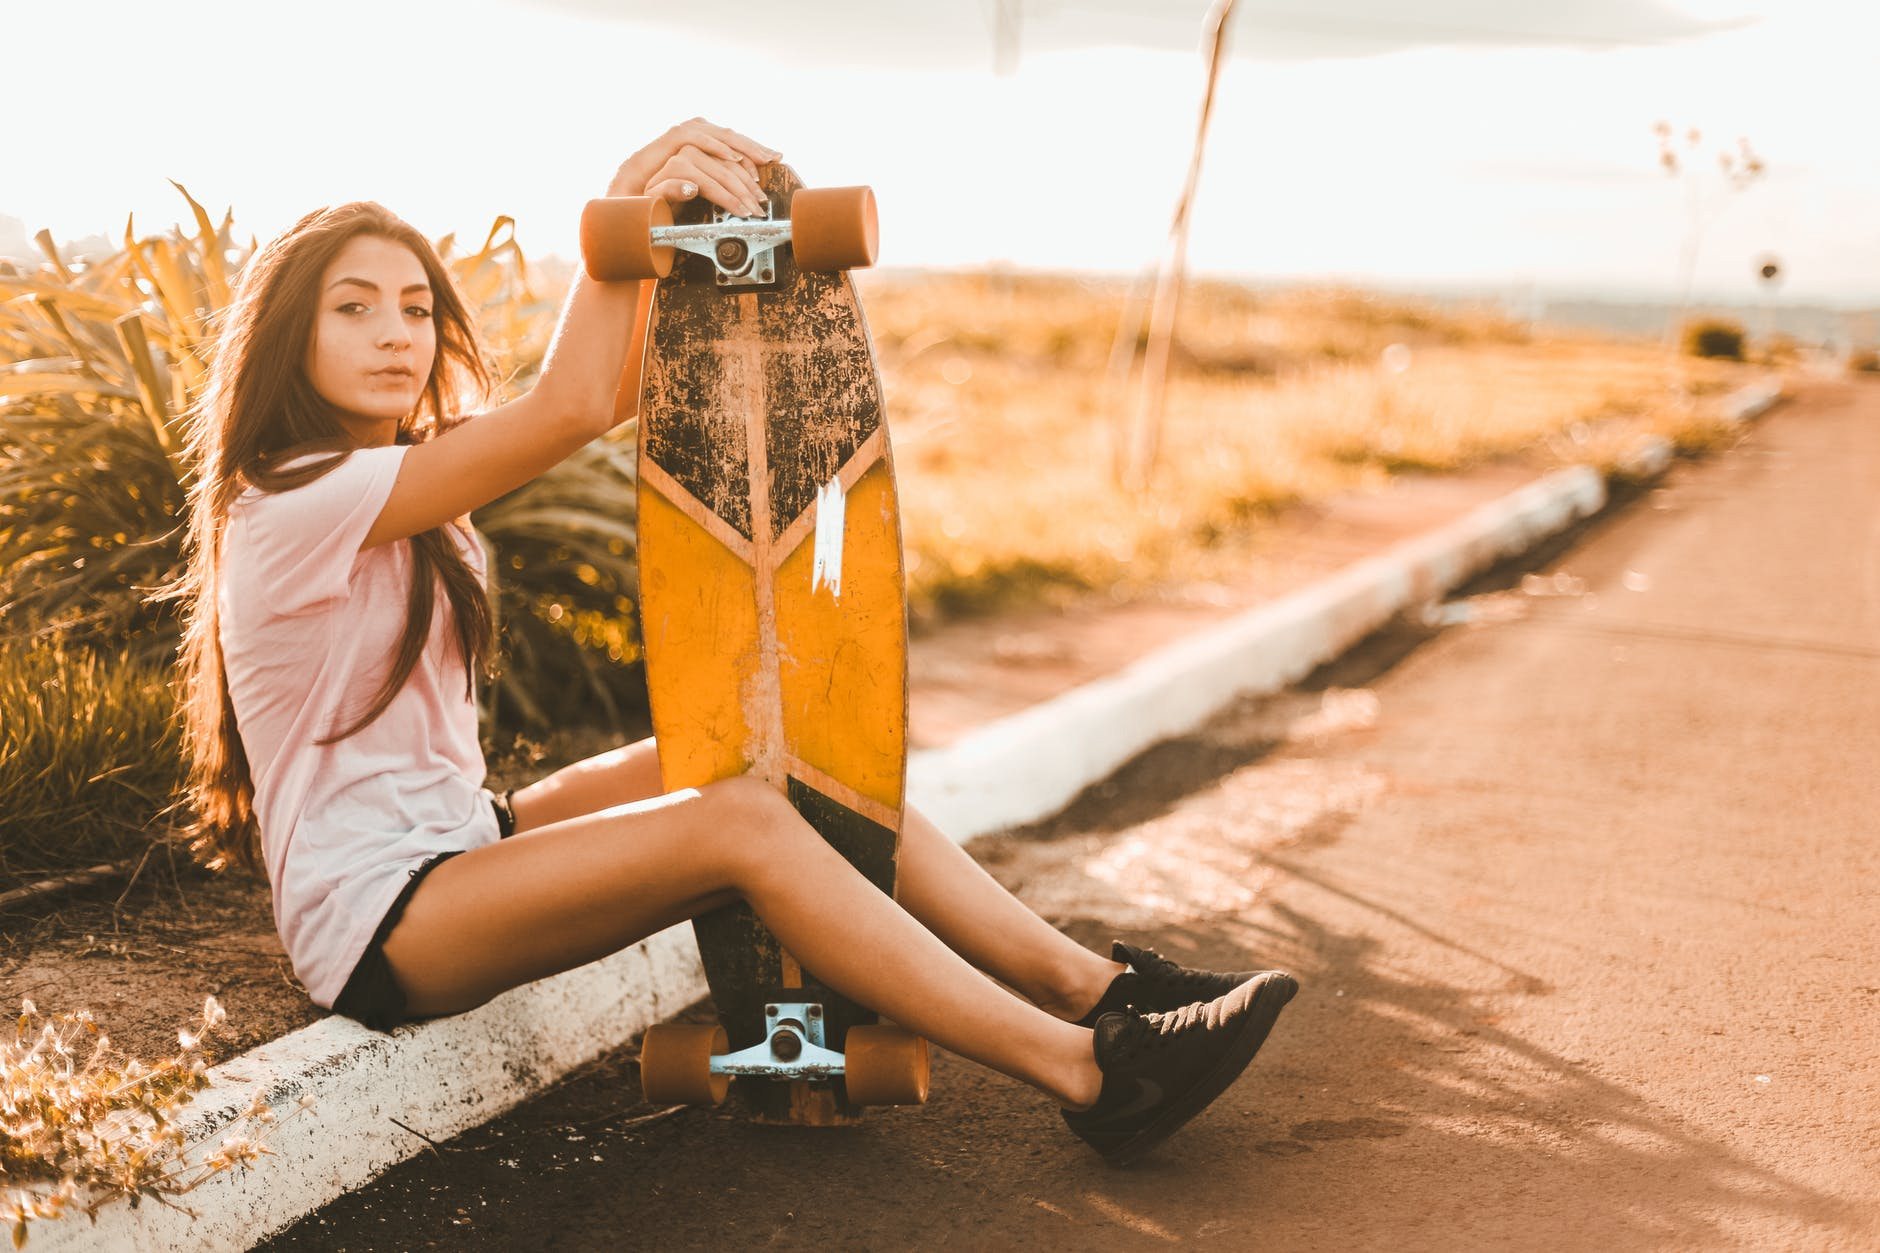 skater with her longboard and best grip tape